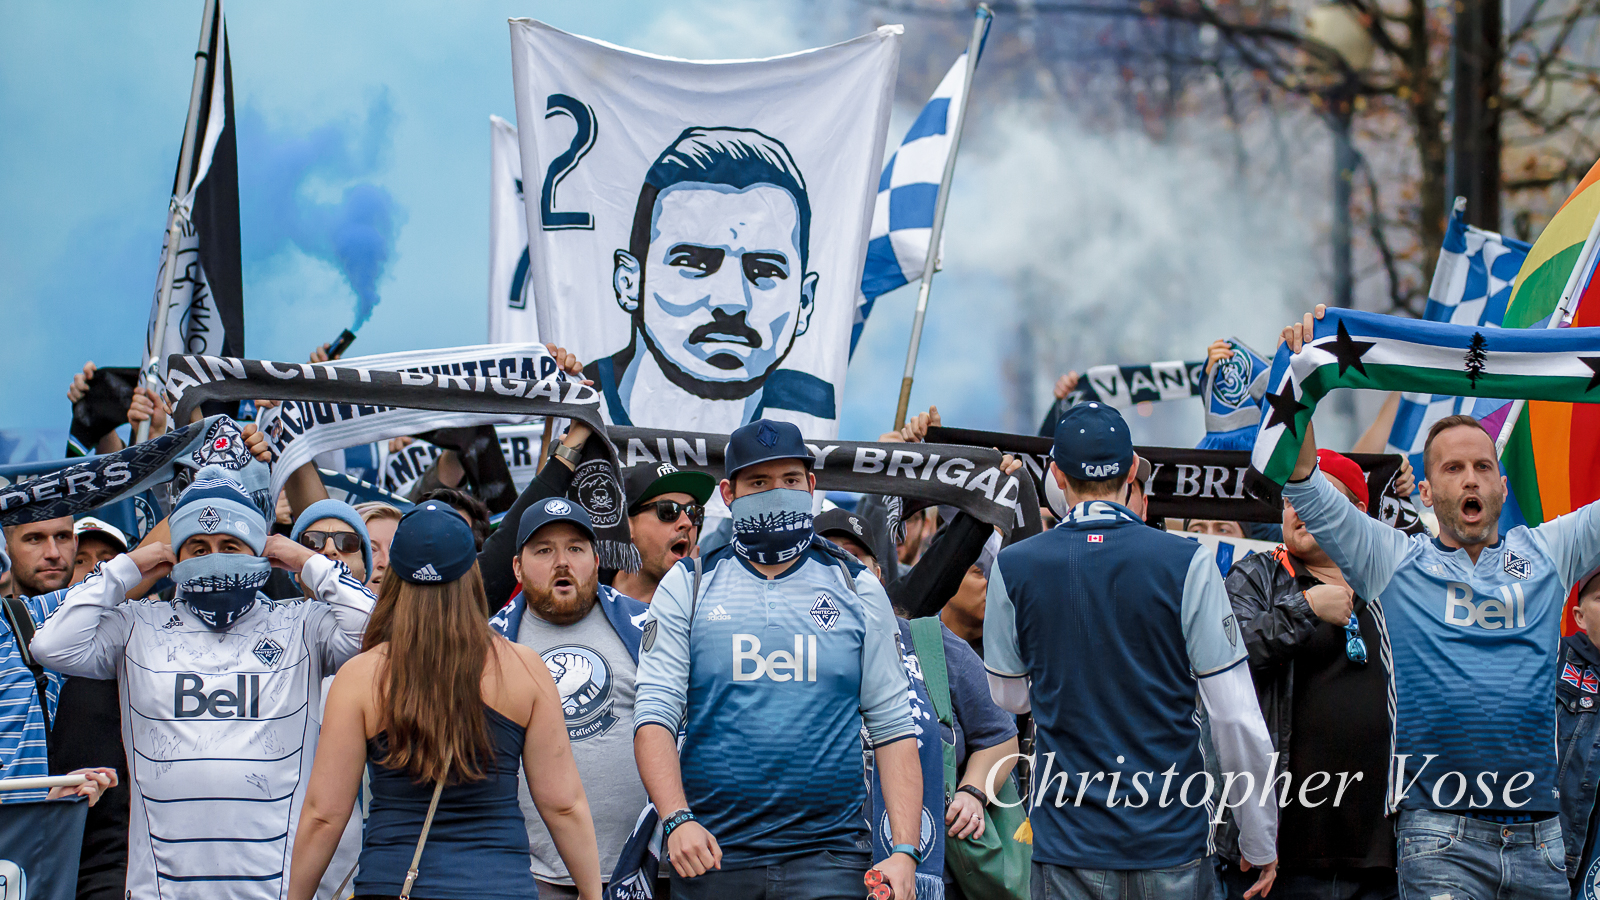 2017-10-29 March to the Match 1.jpg